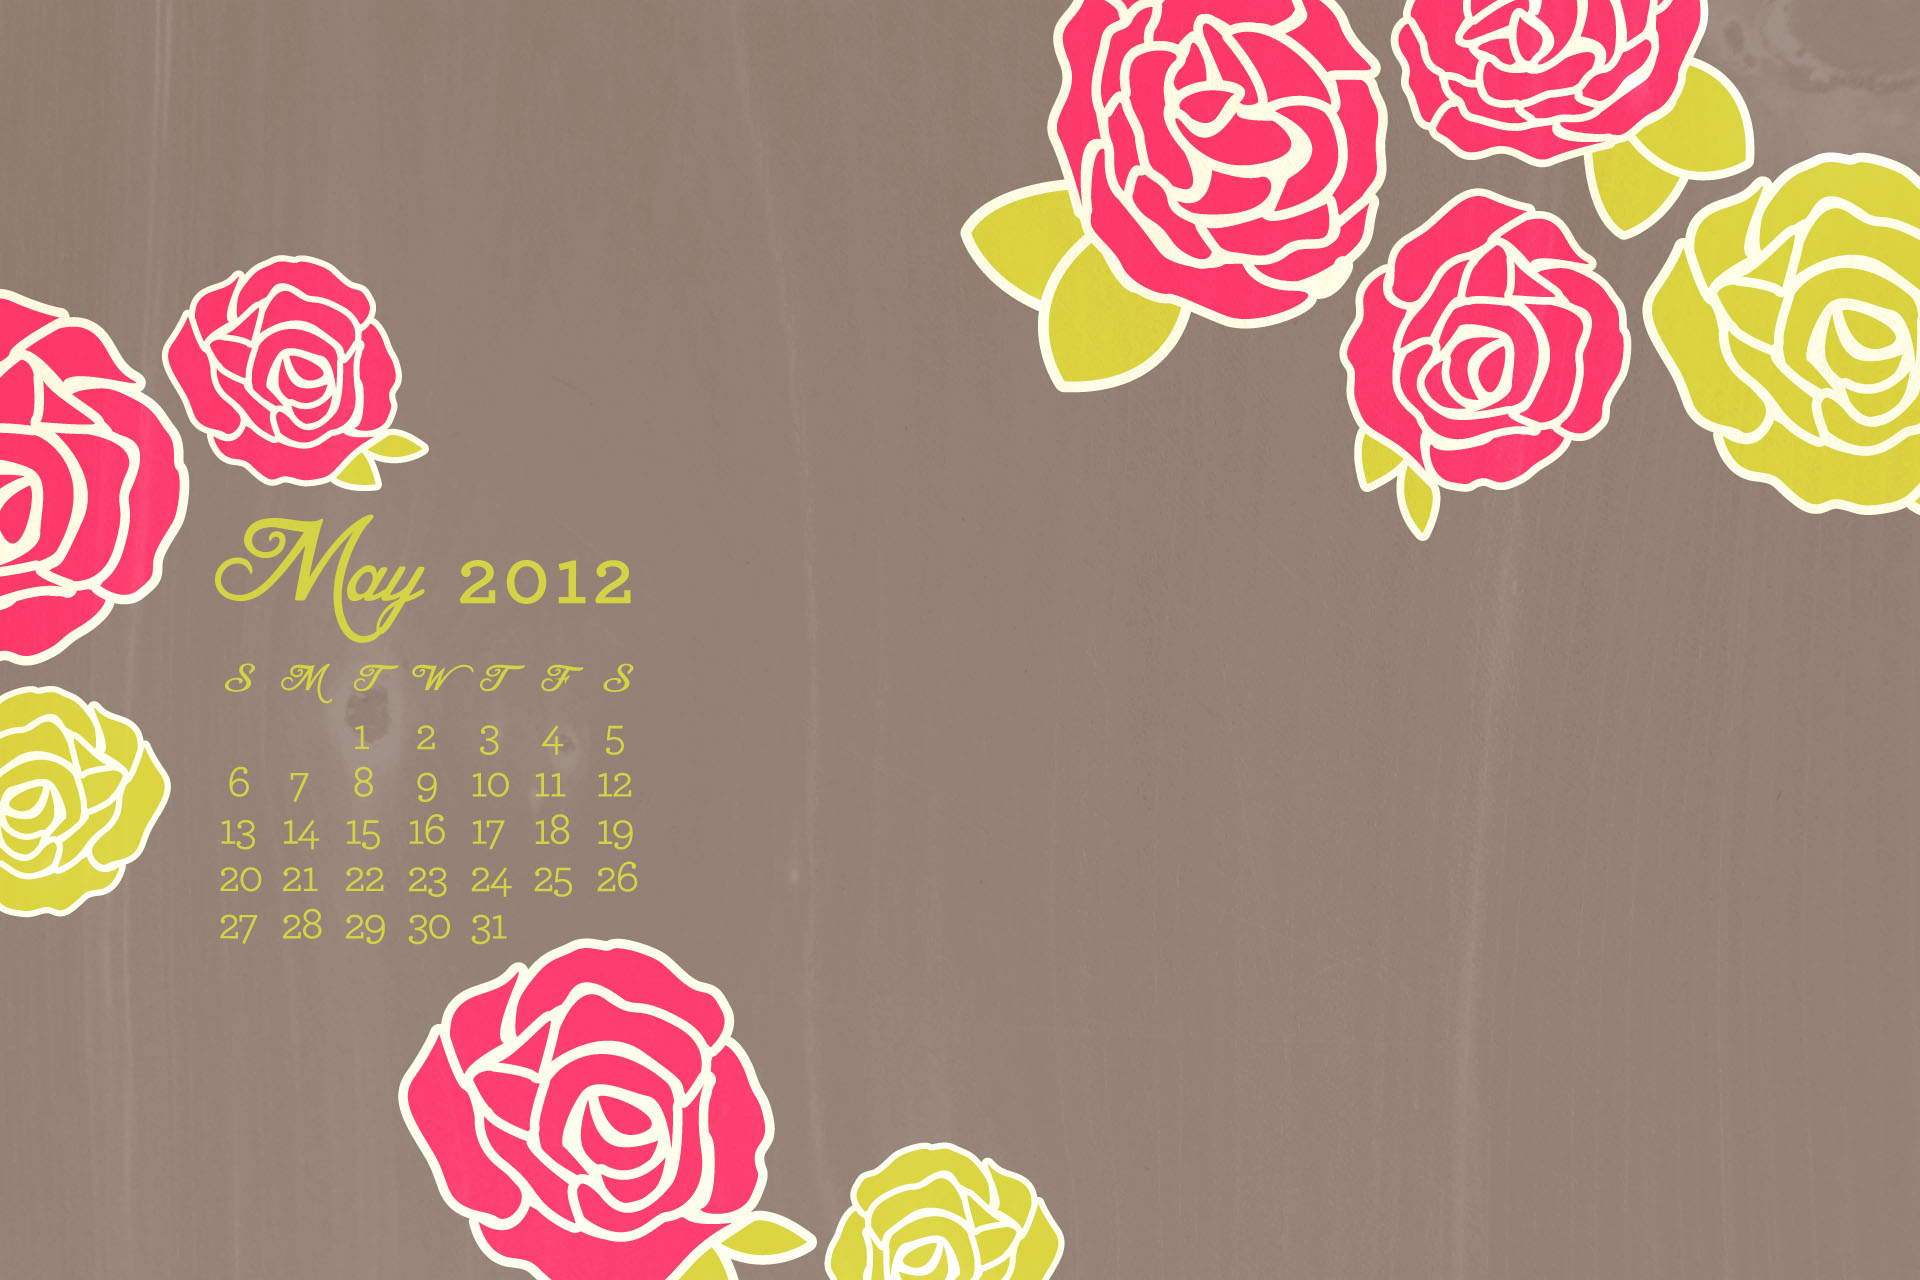 Calendar Wallpaper May : May desktop iphone ipad calendar wallpaper sarah